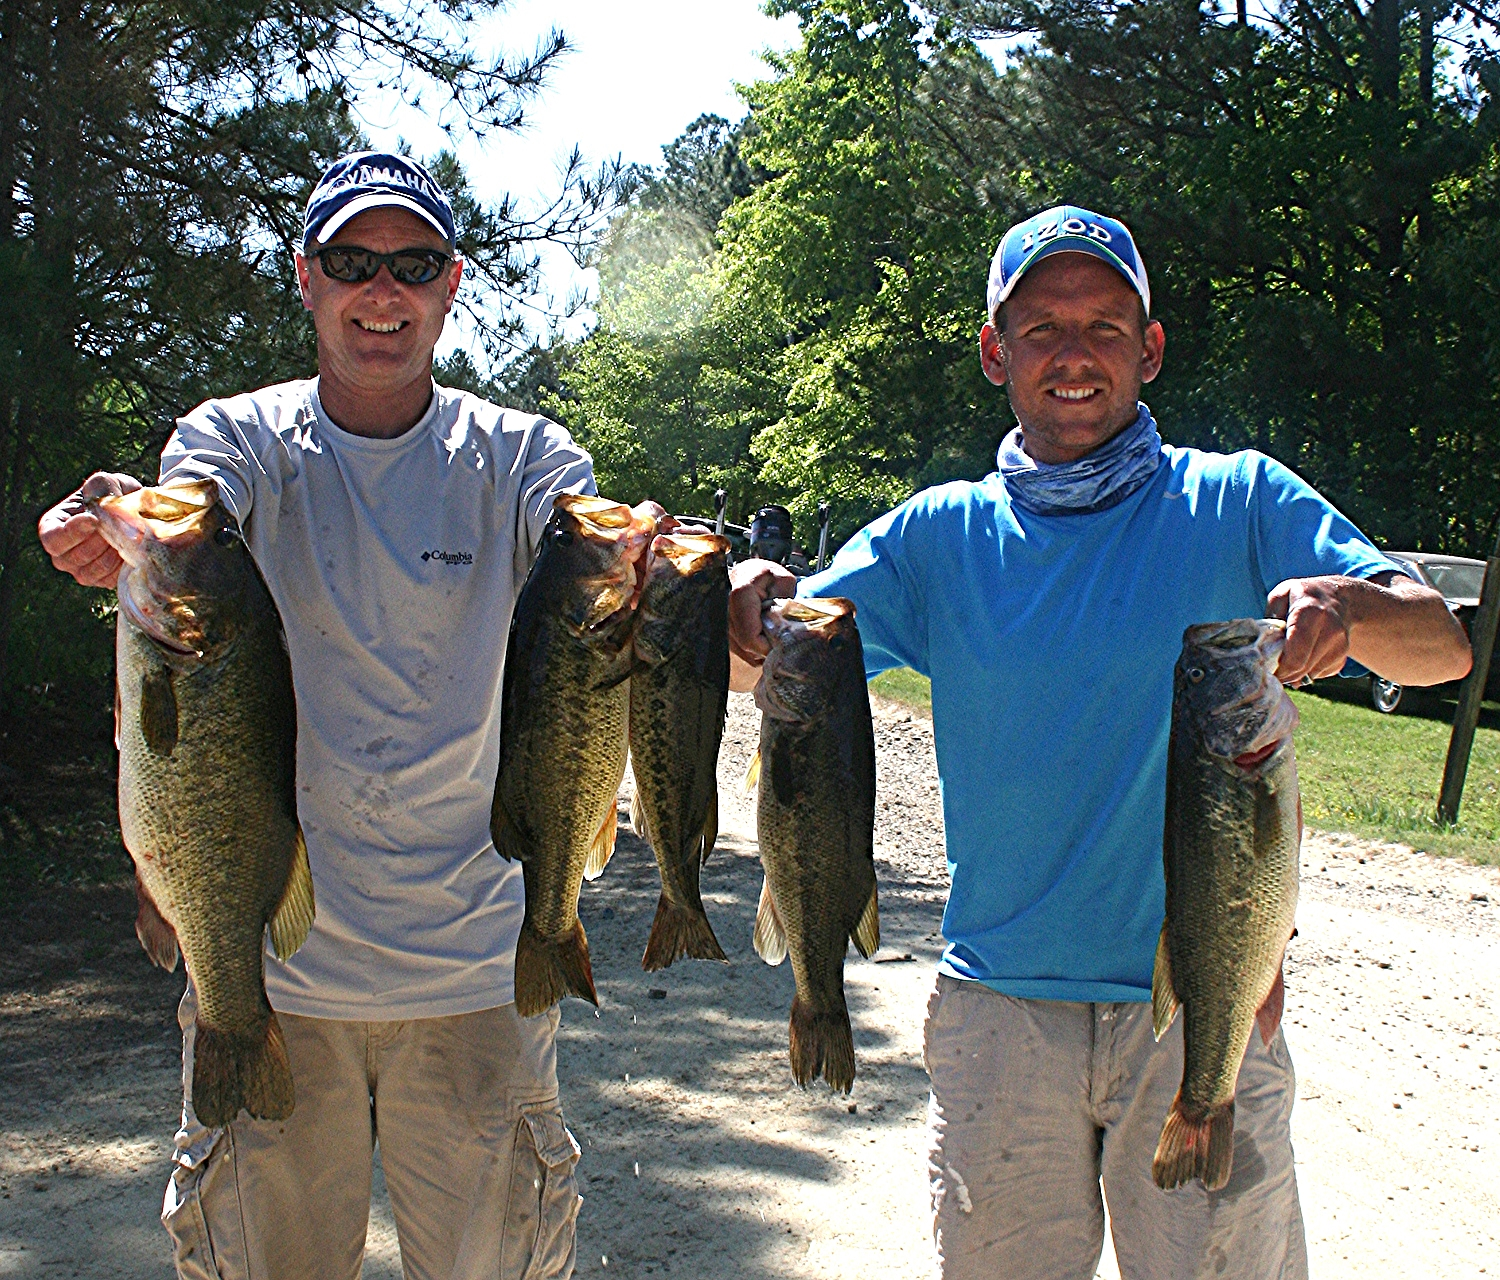 Mark  and Michael Heatwole First Place and Big Fish 21.88 lbs and 7 44 lbs